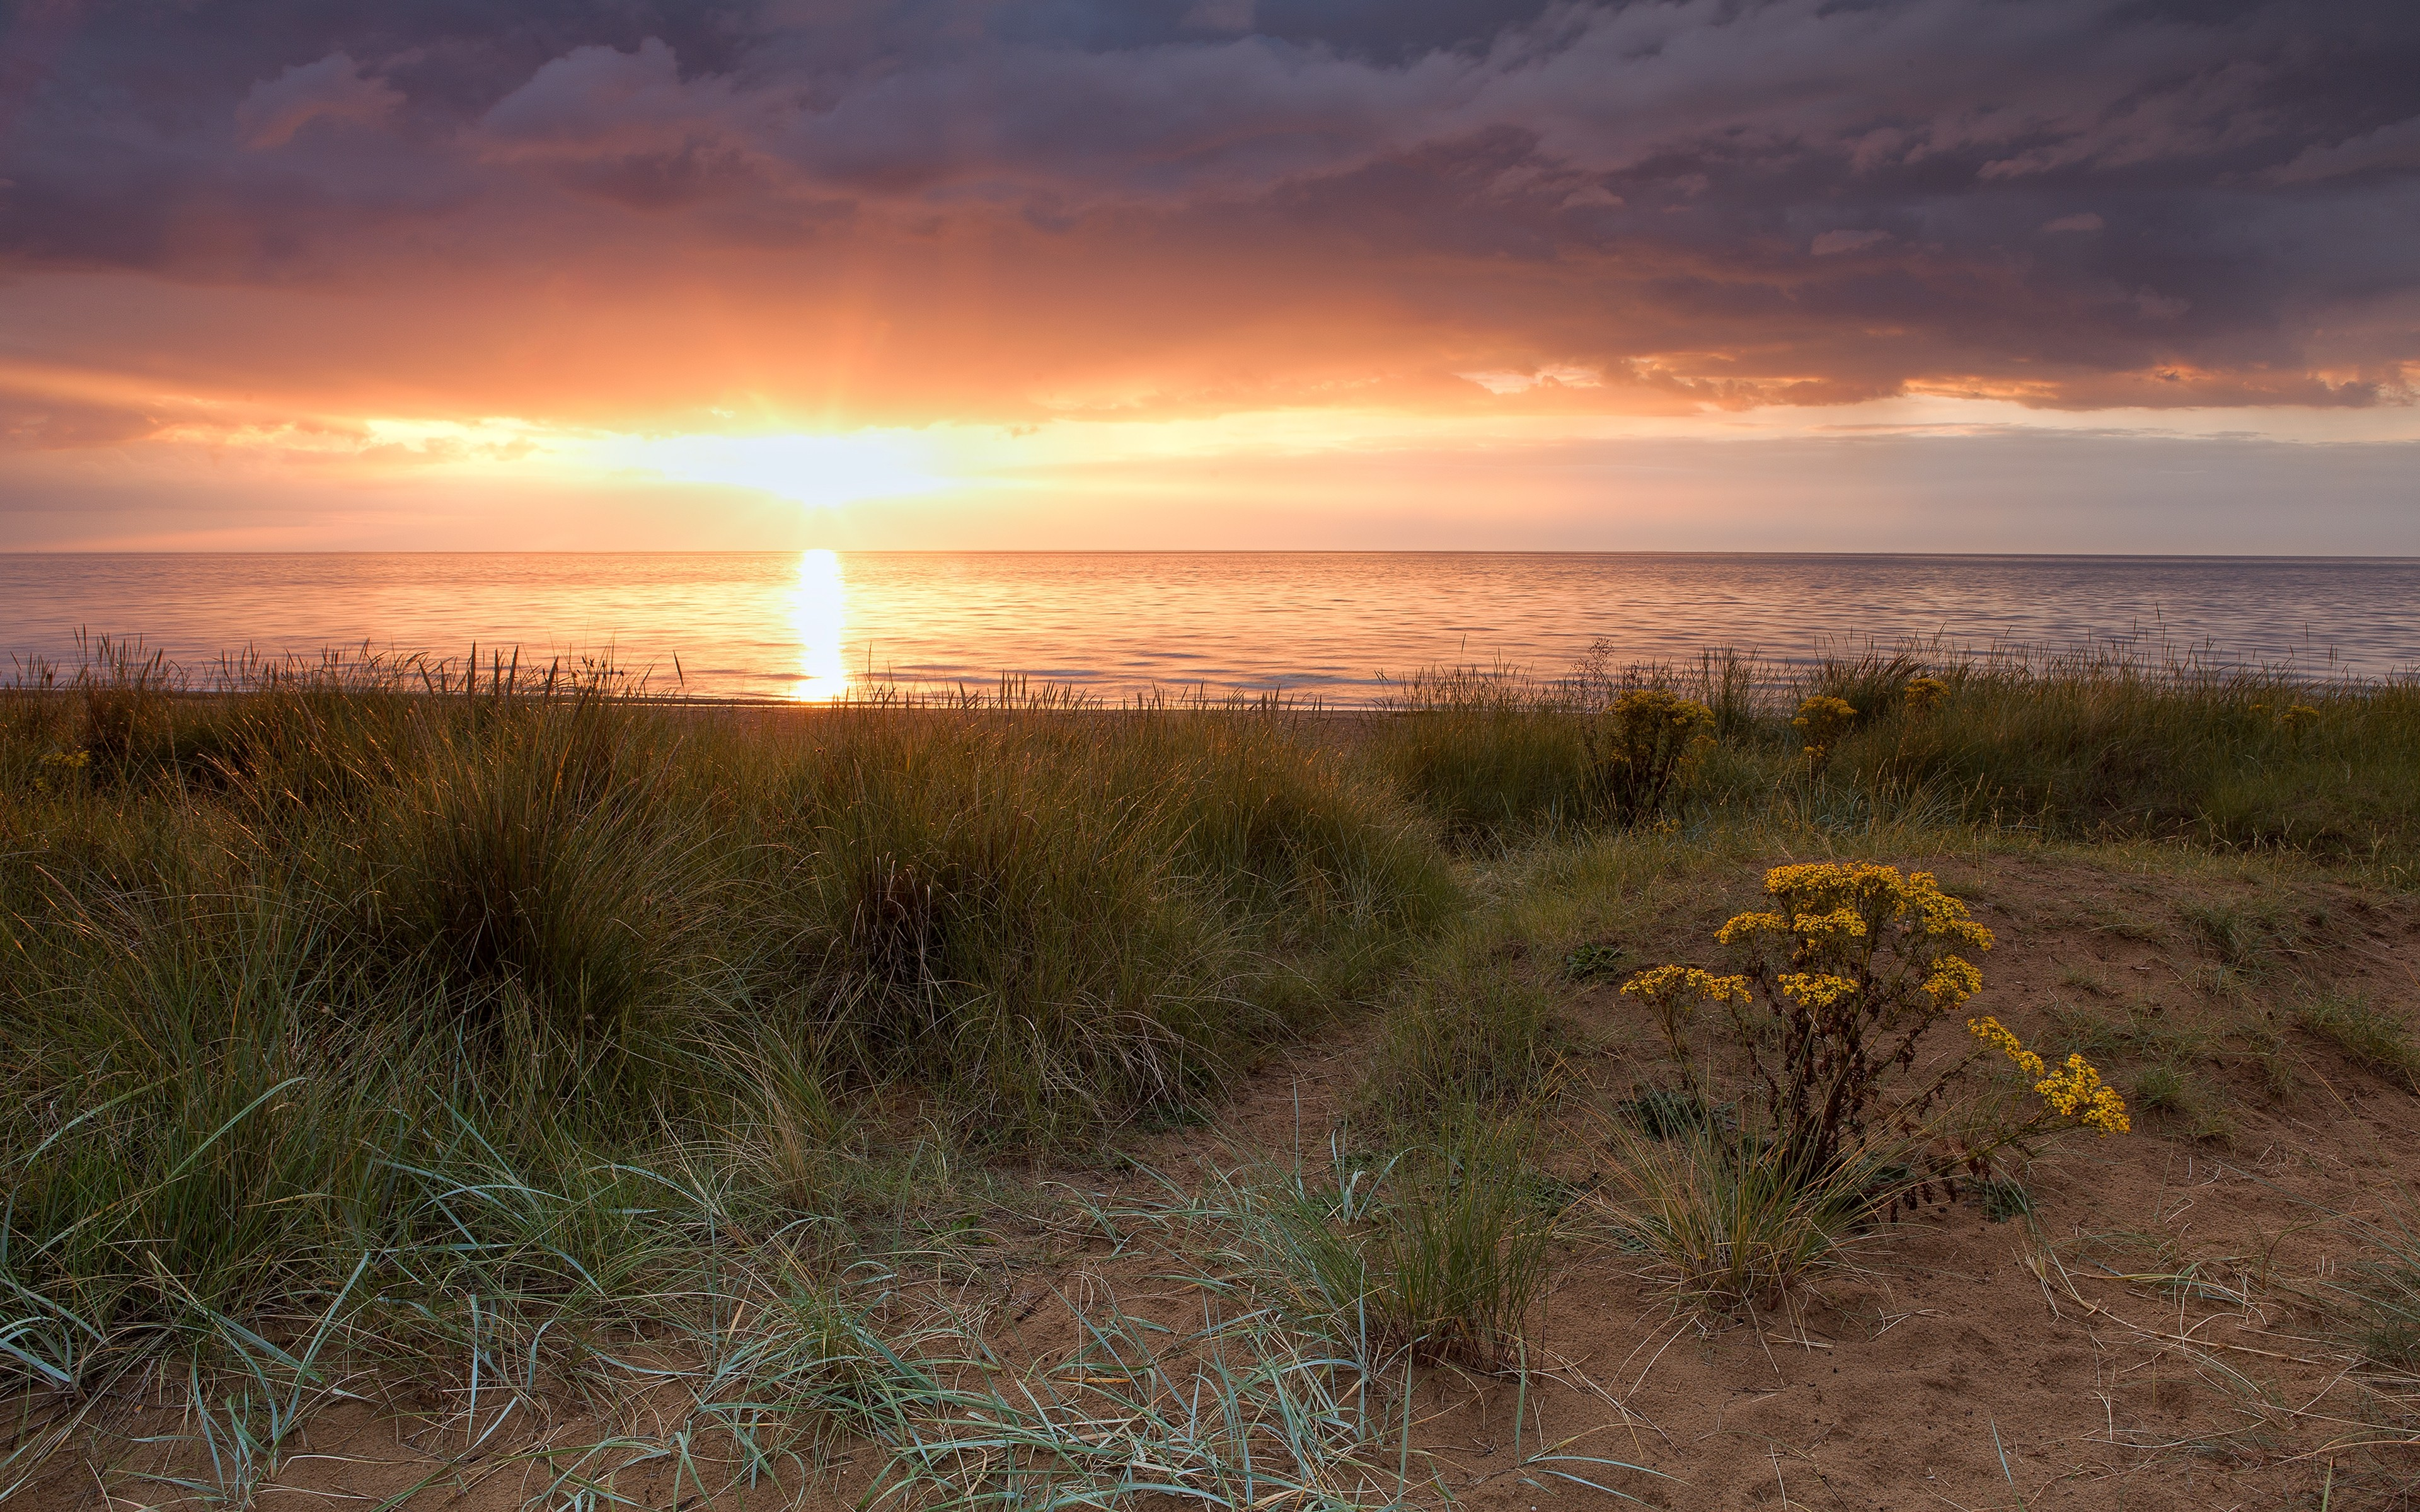 water sunset ocean clouds landscapes nature coast Sun England grass United Kingdom sea